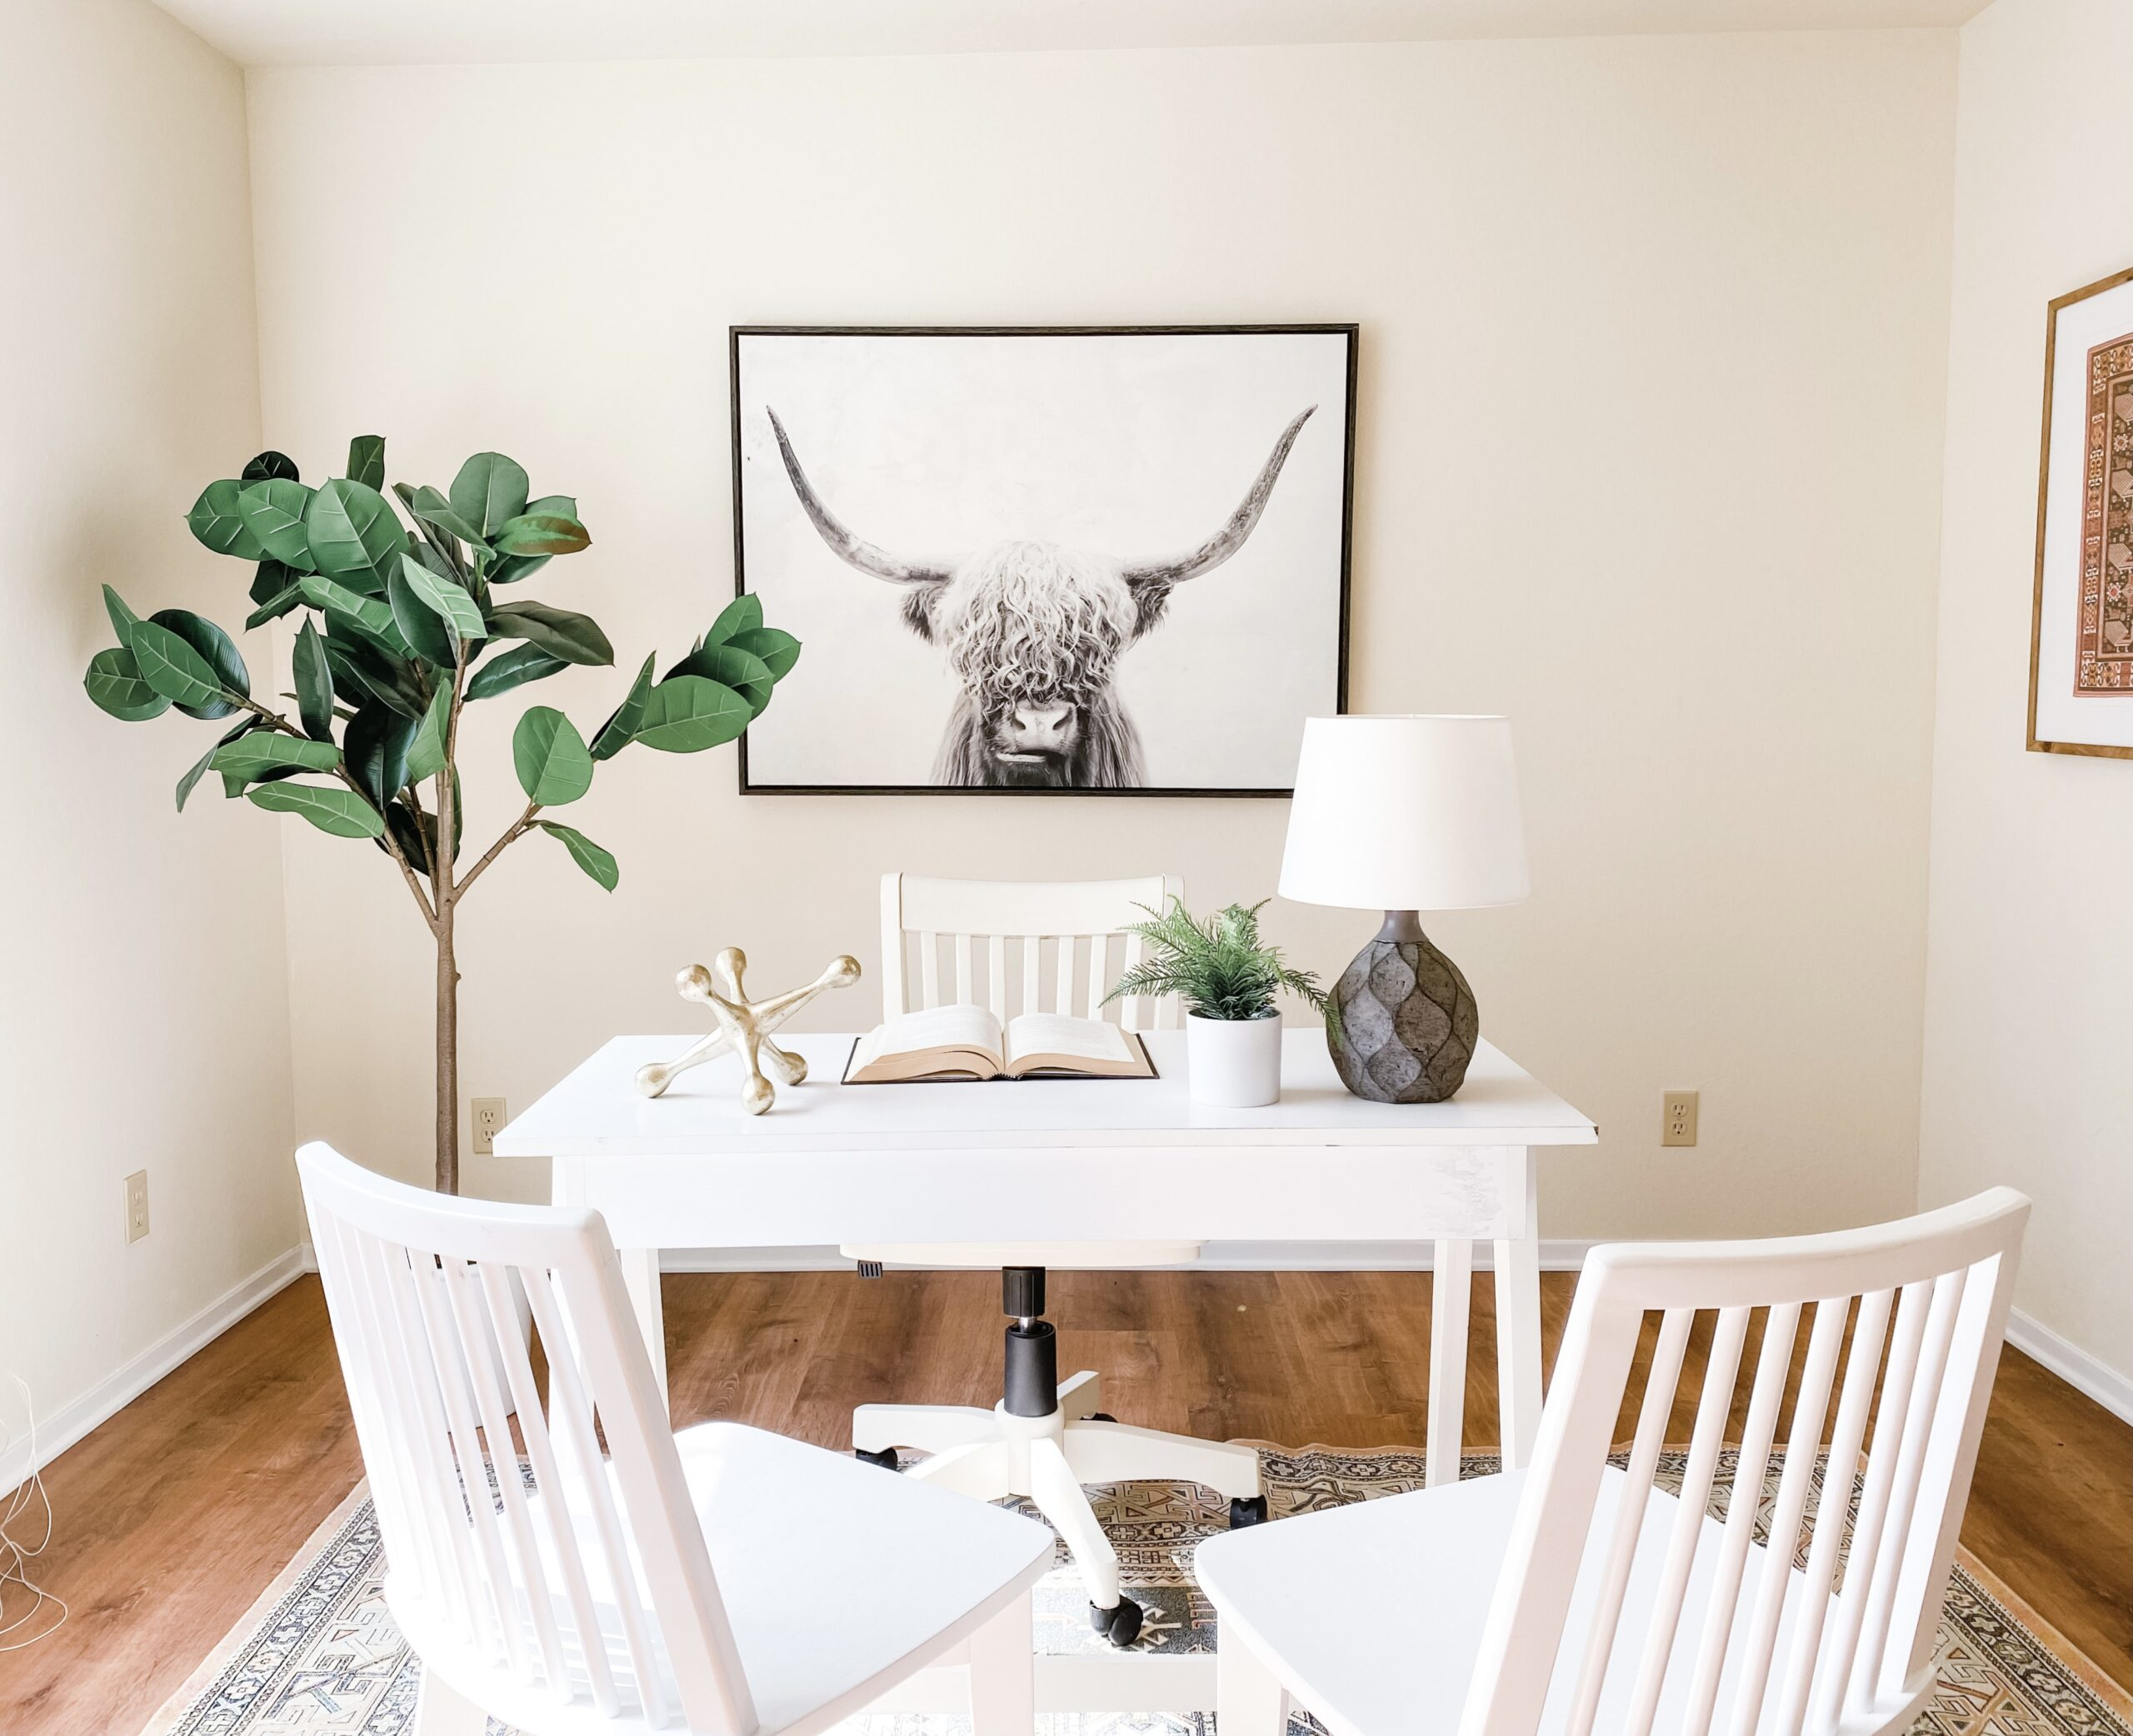 Staging a home office is important in toady's market